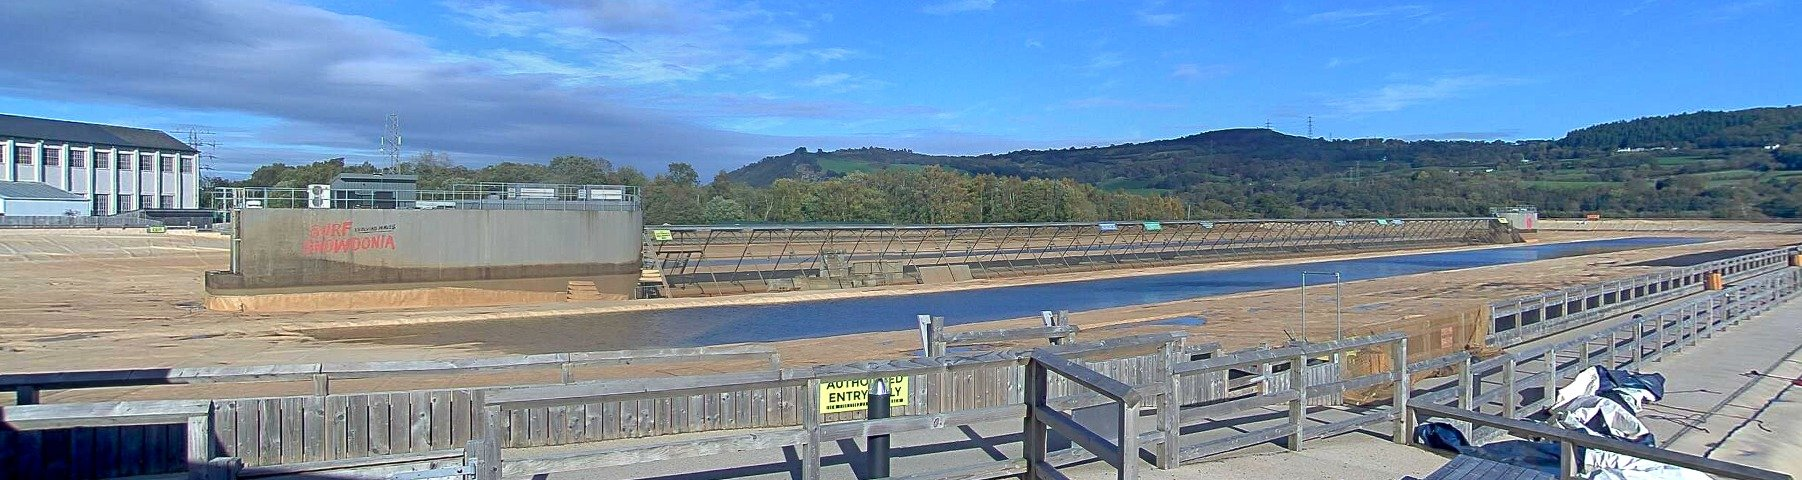 Latest webcam still for Surf Snowdonia